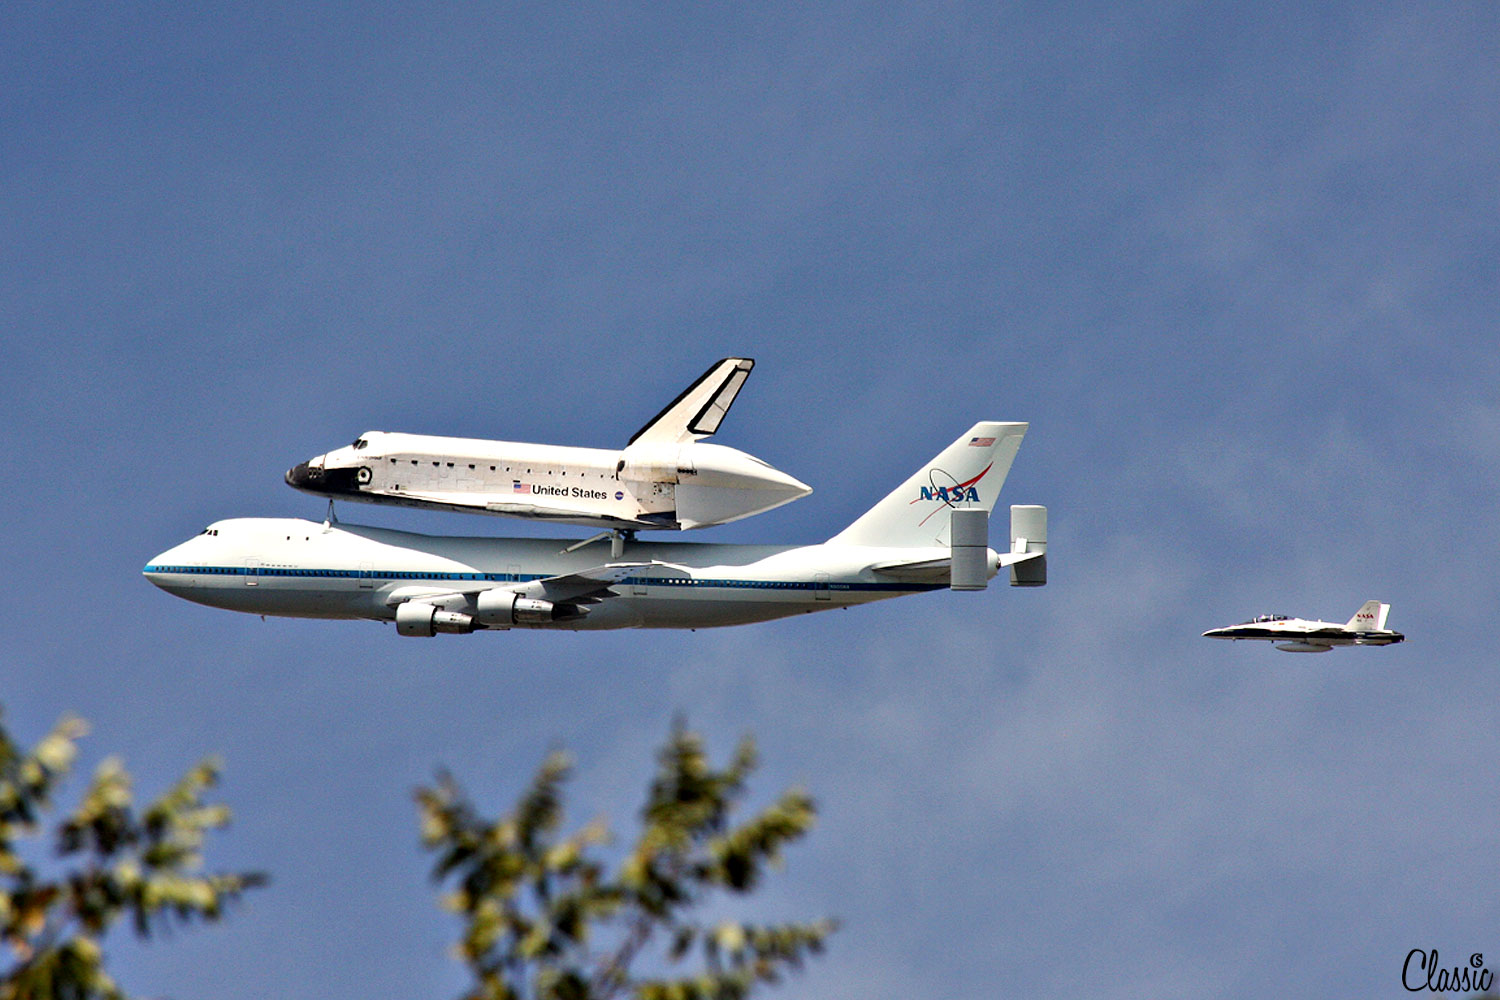 Space Shuttle Fly over CHIARIstyle